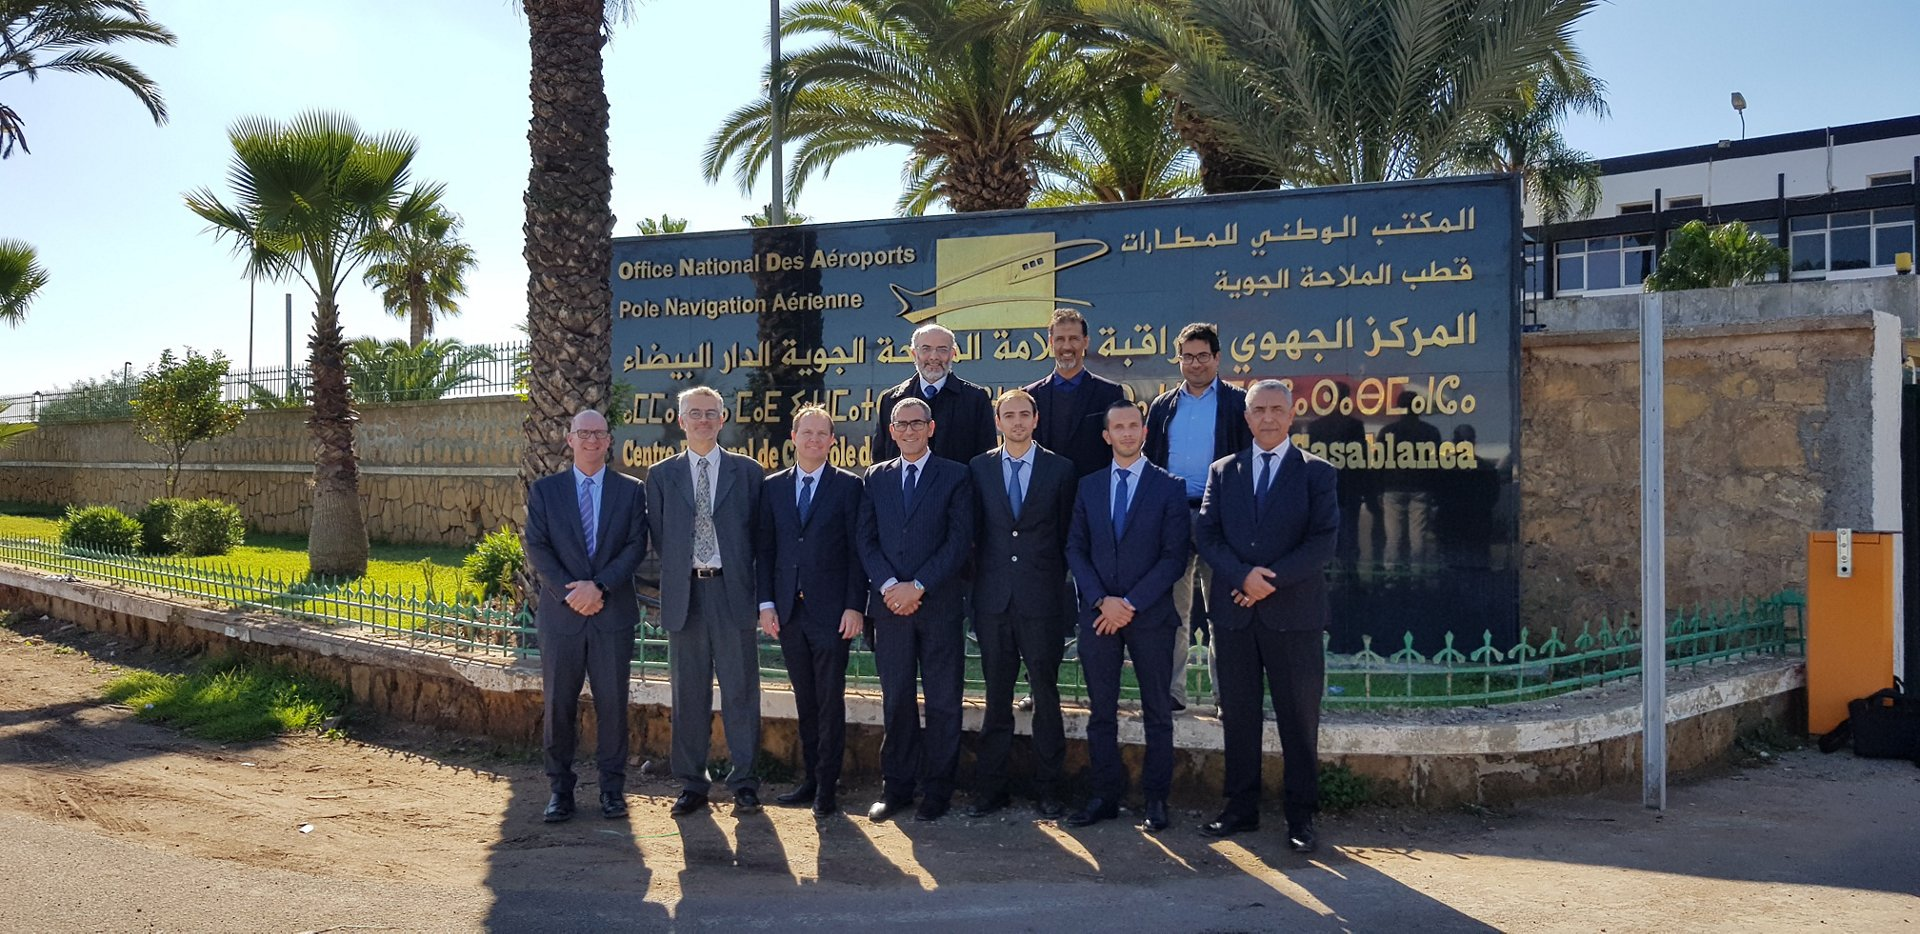 NAVBLUE supports Qatar Airways to deploy PBN in Morocco